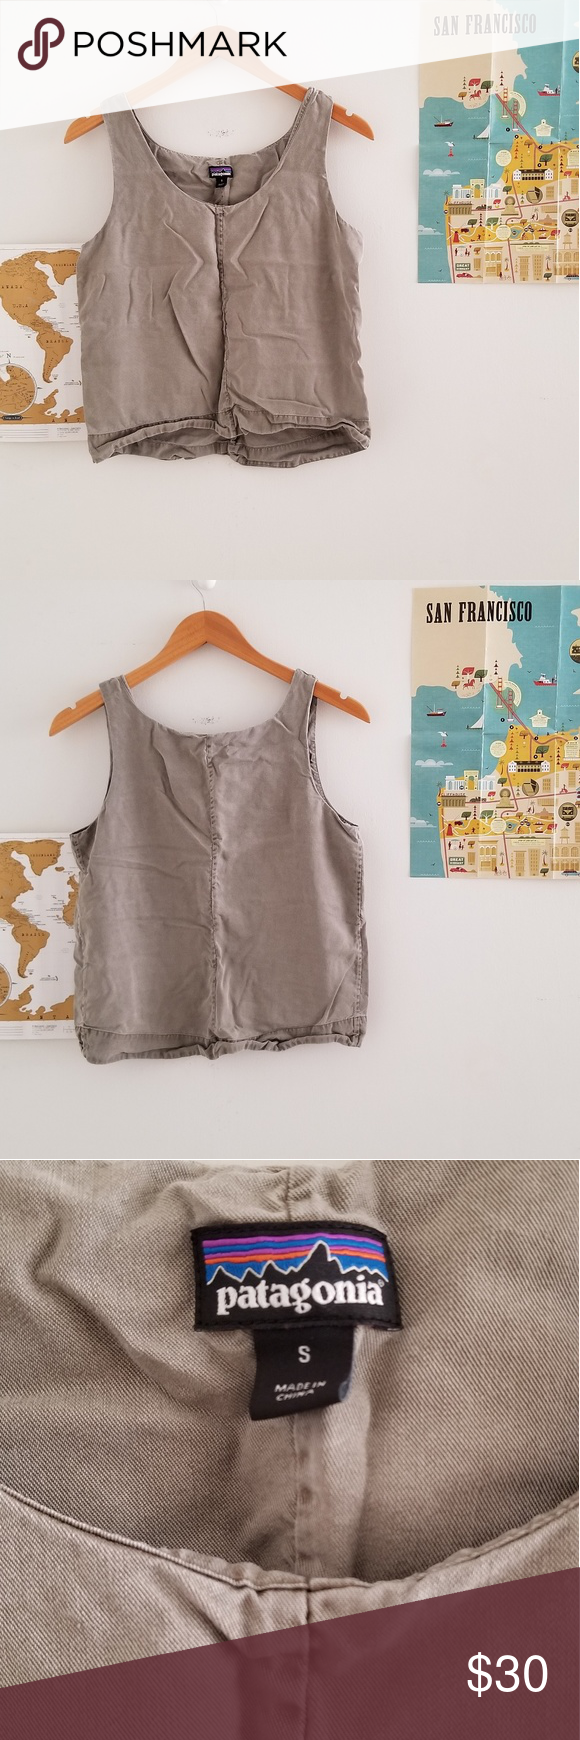 8b1d7065dc044 patagonia • recircle tank top About  •brand  Patagonia •size  small •color   clean palmetto green •boxy silhouette •double layered •bra-friendly straps  ...